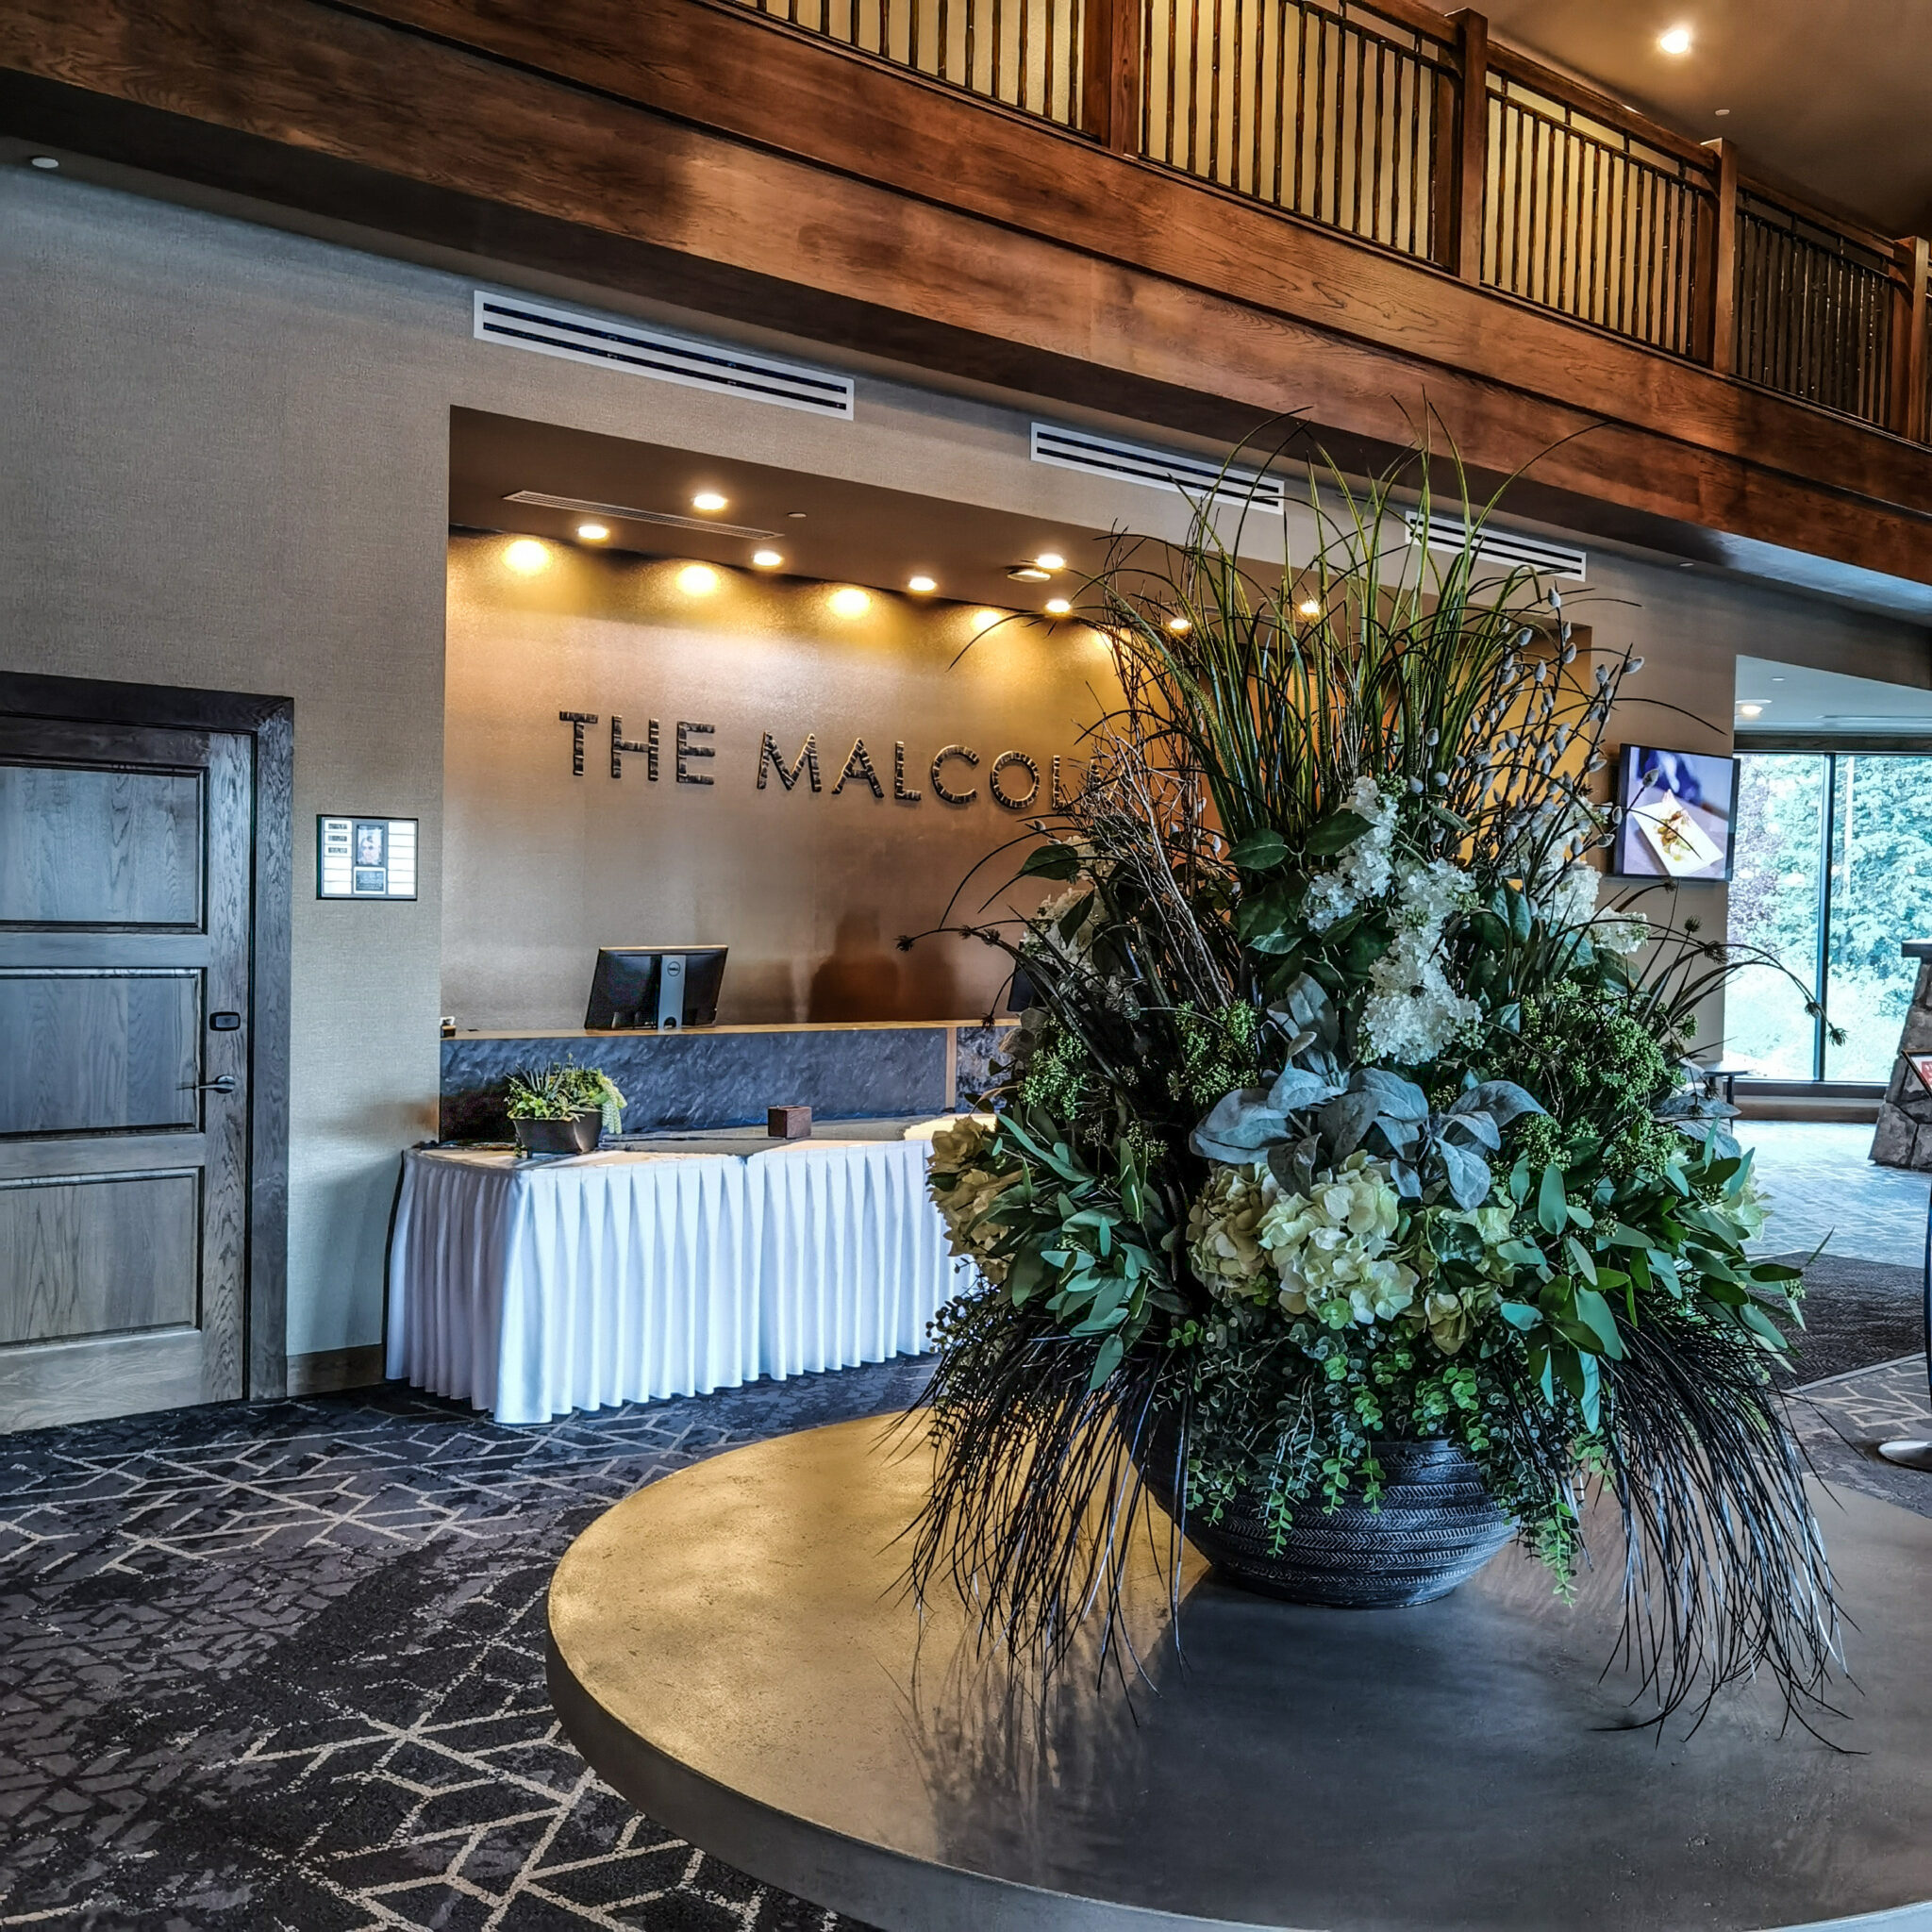 Hotel Malcolm Canmore Alberta - Canadian Rockies - Front Desk